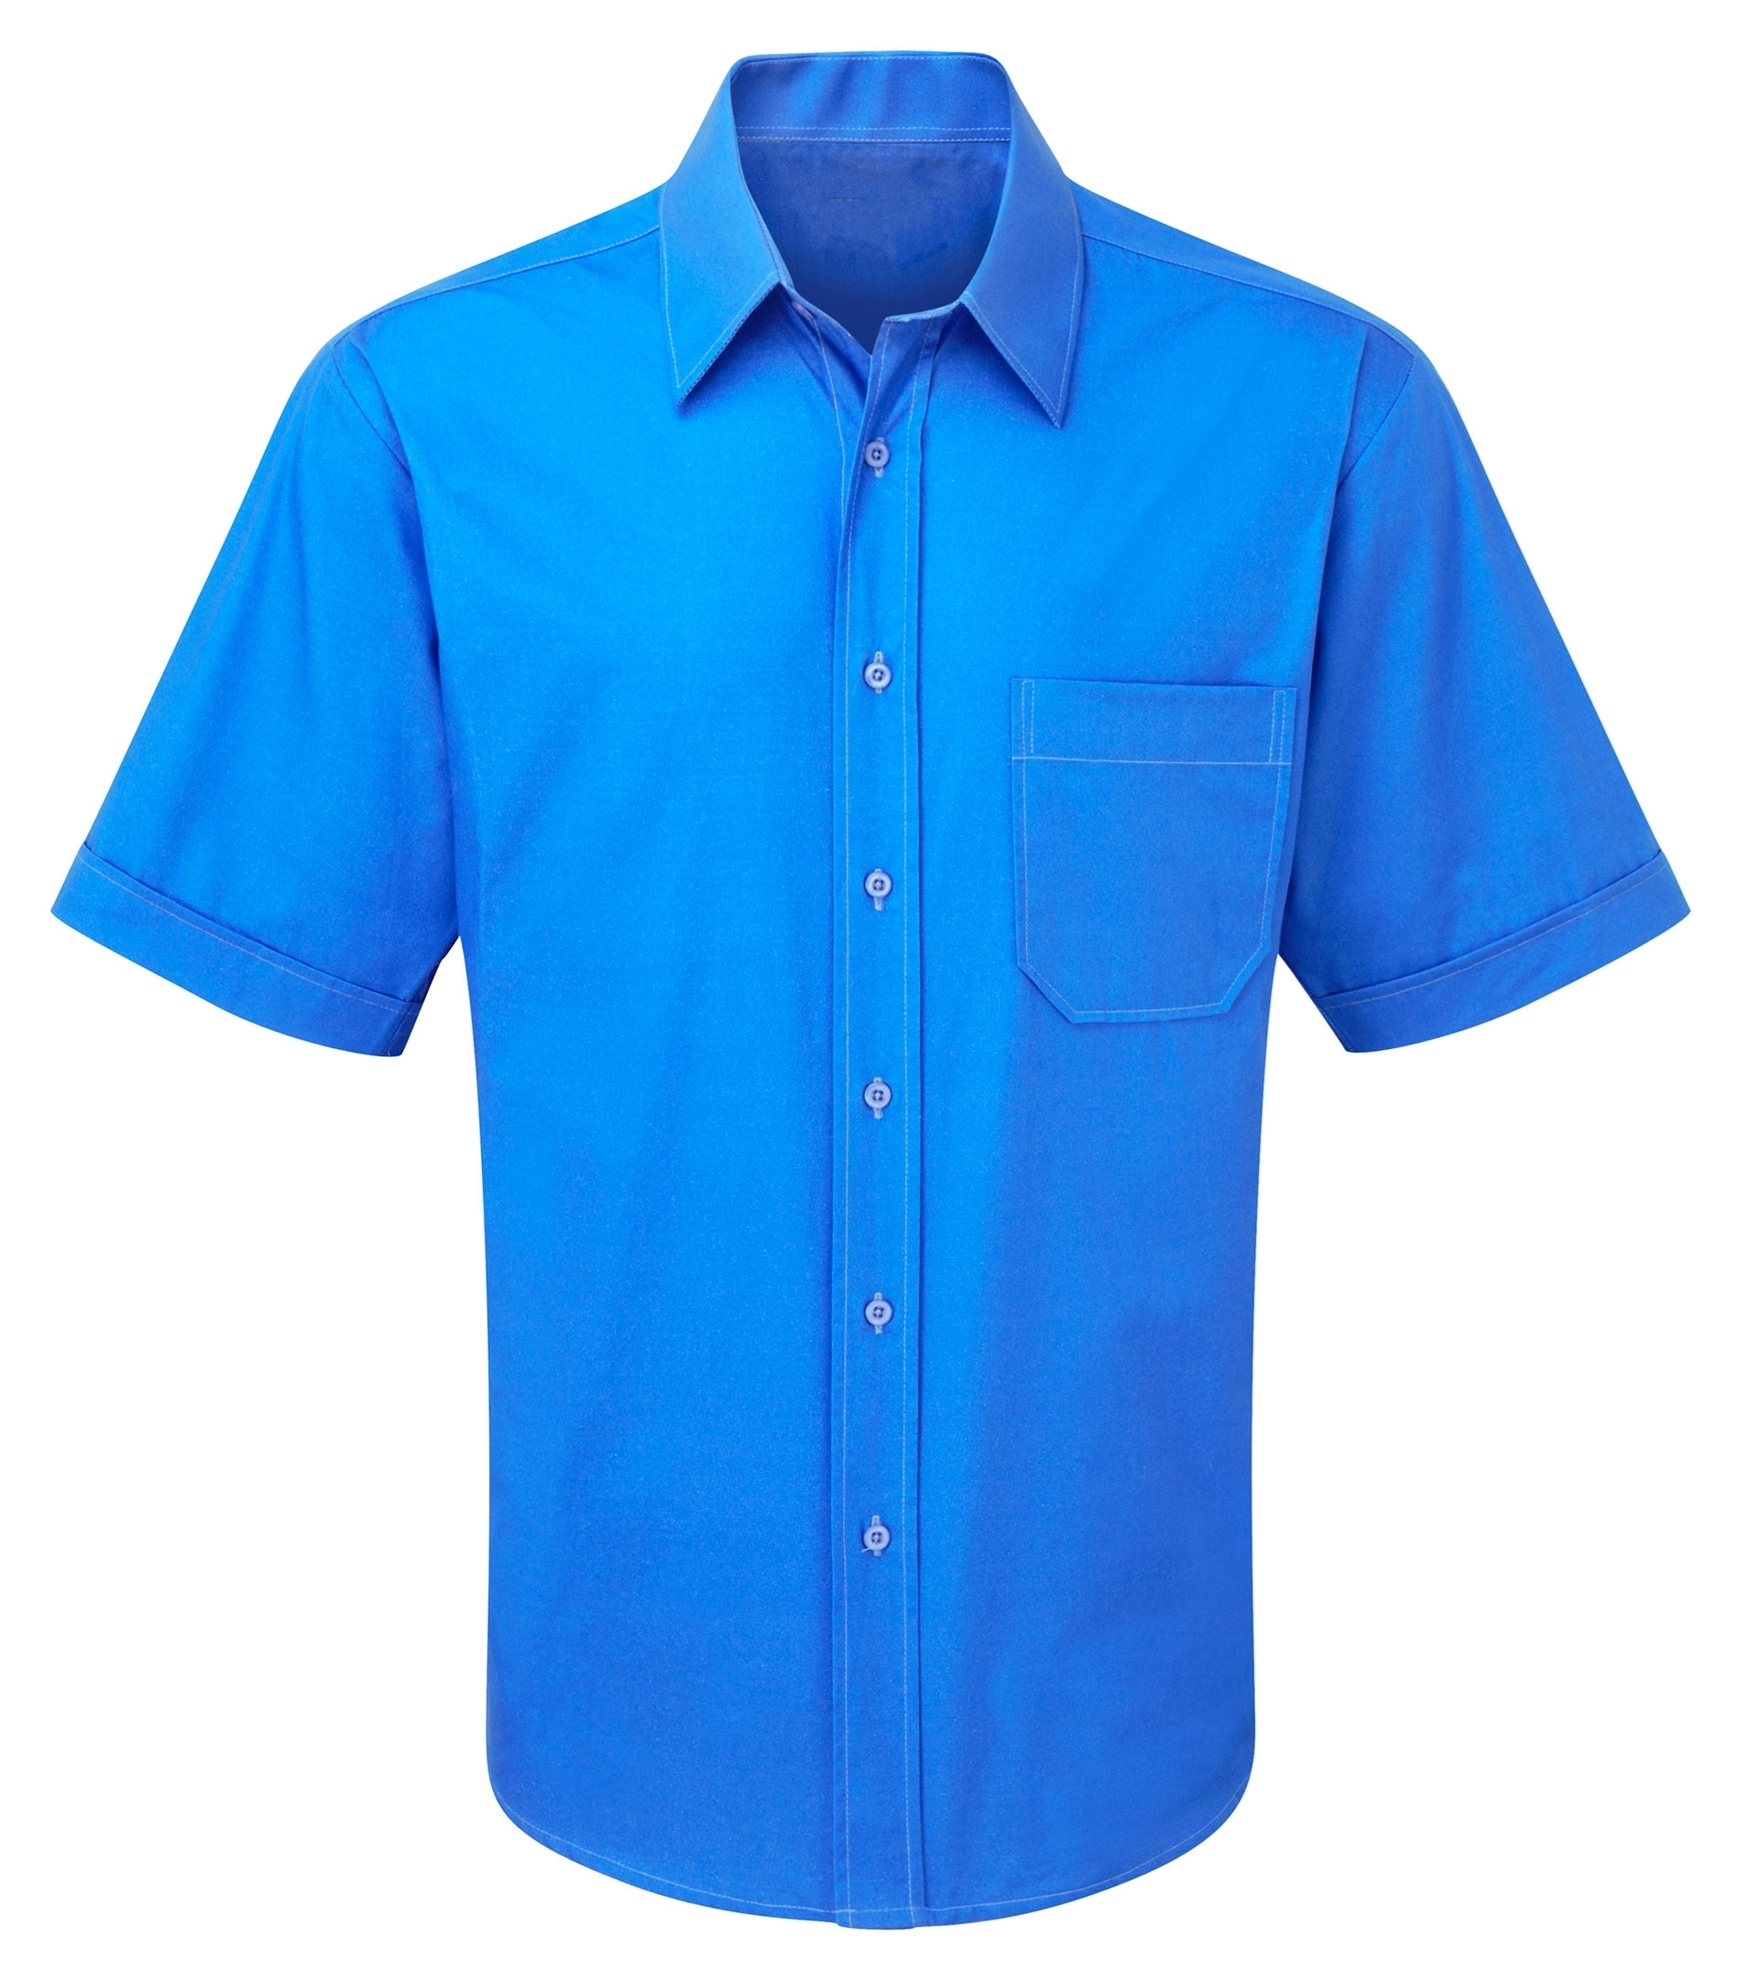 Picture of Male Short Sleeve Shirt - Plain Azure